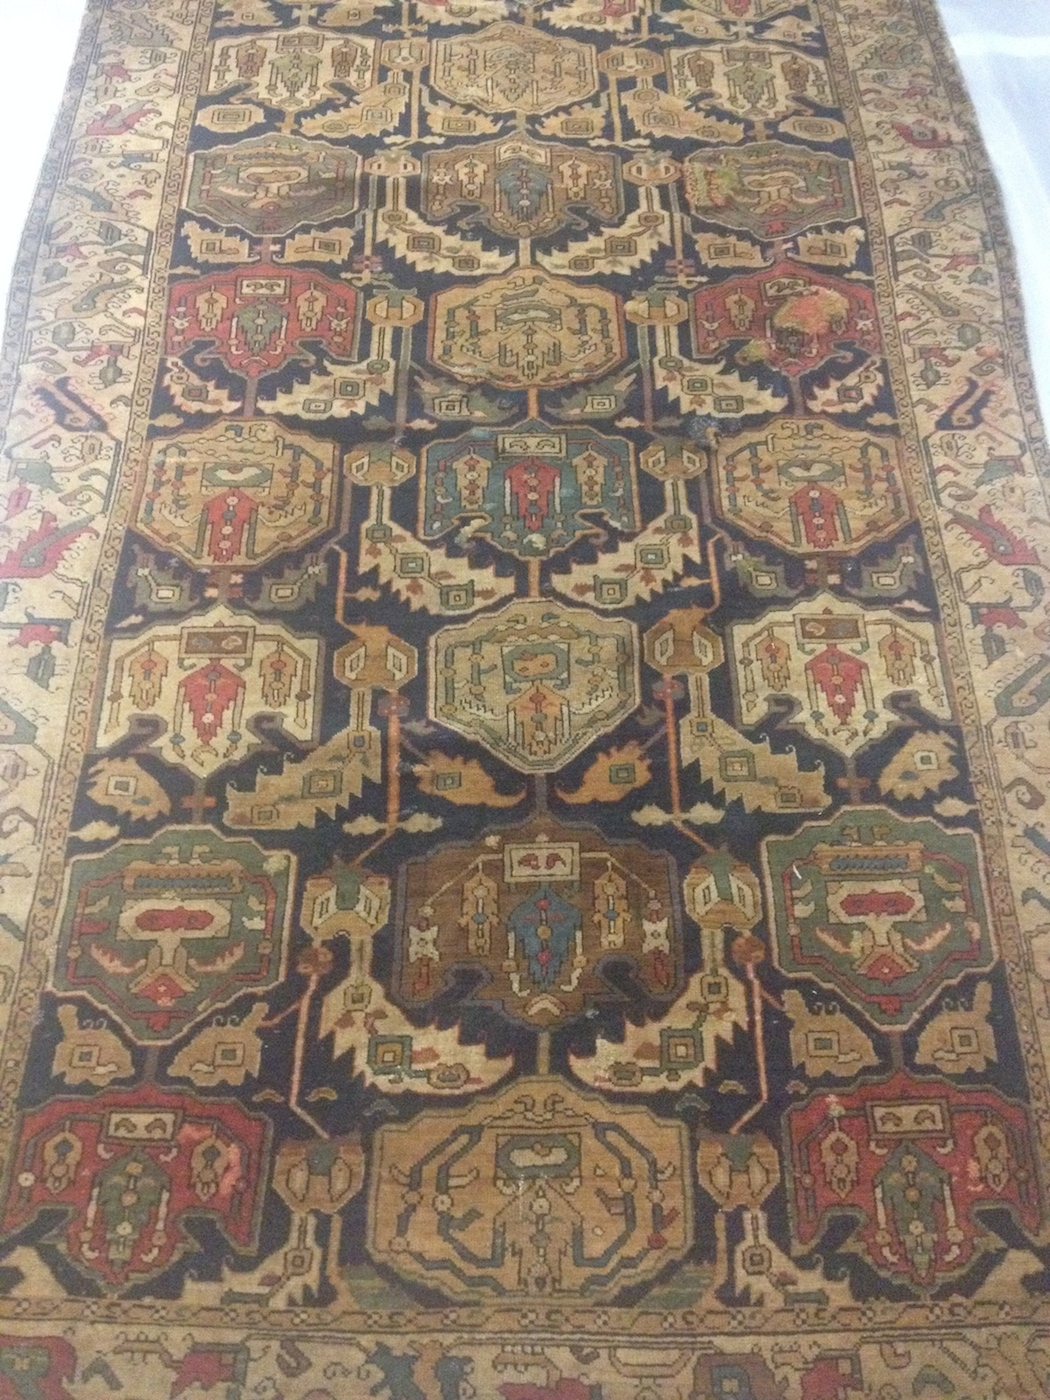 V&A Clothworkers Reserves - Shirvan rug